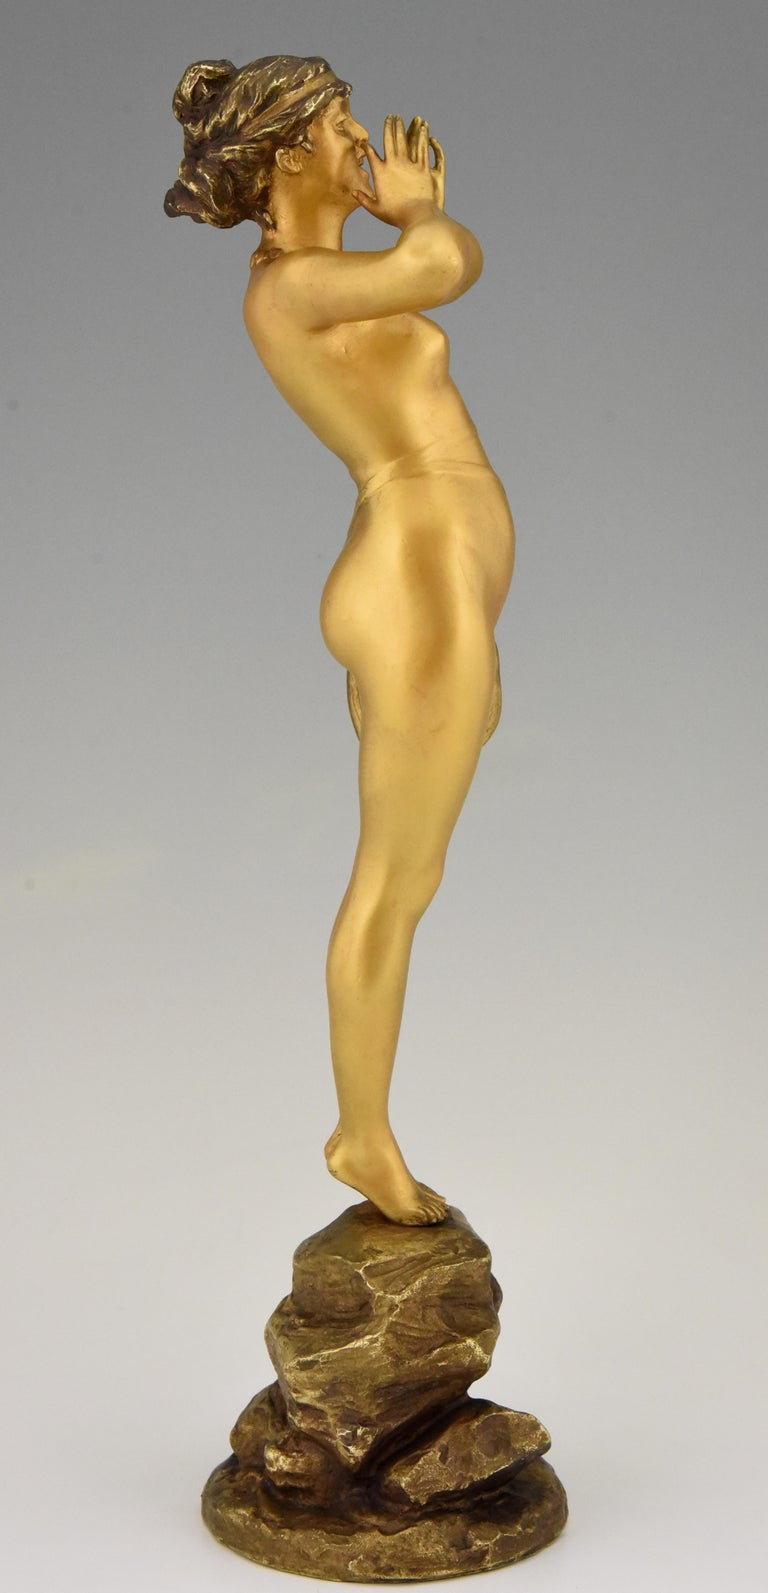 19th Century Art Nouveau Bronze Sculpture Calling Nude Lady Alfred Grevin and Friedrich Beer